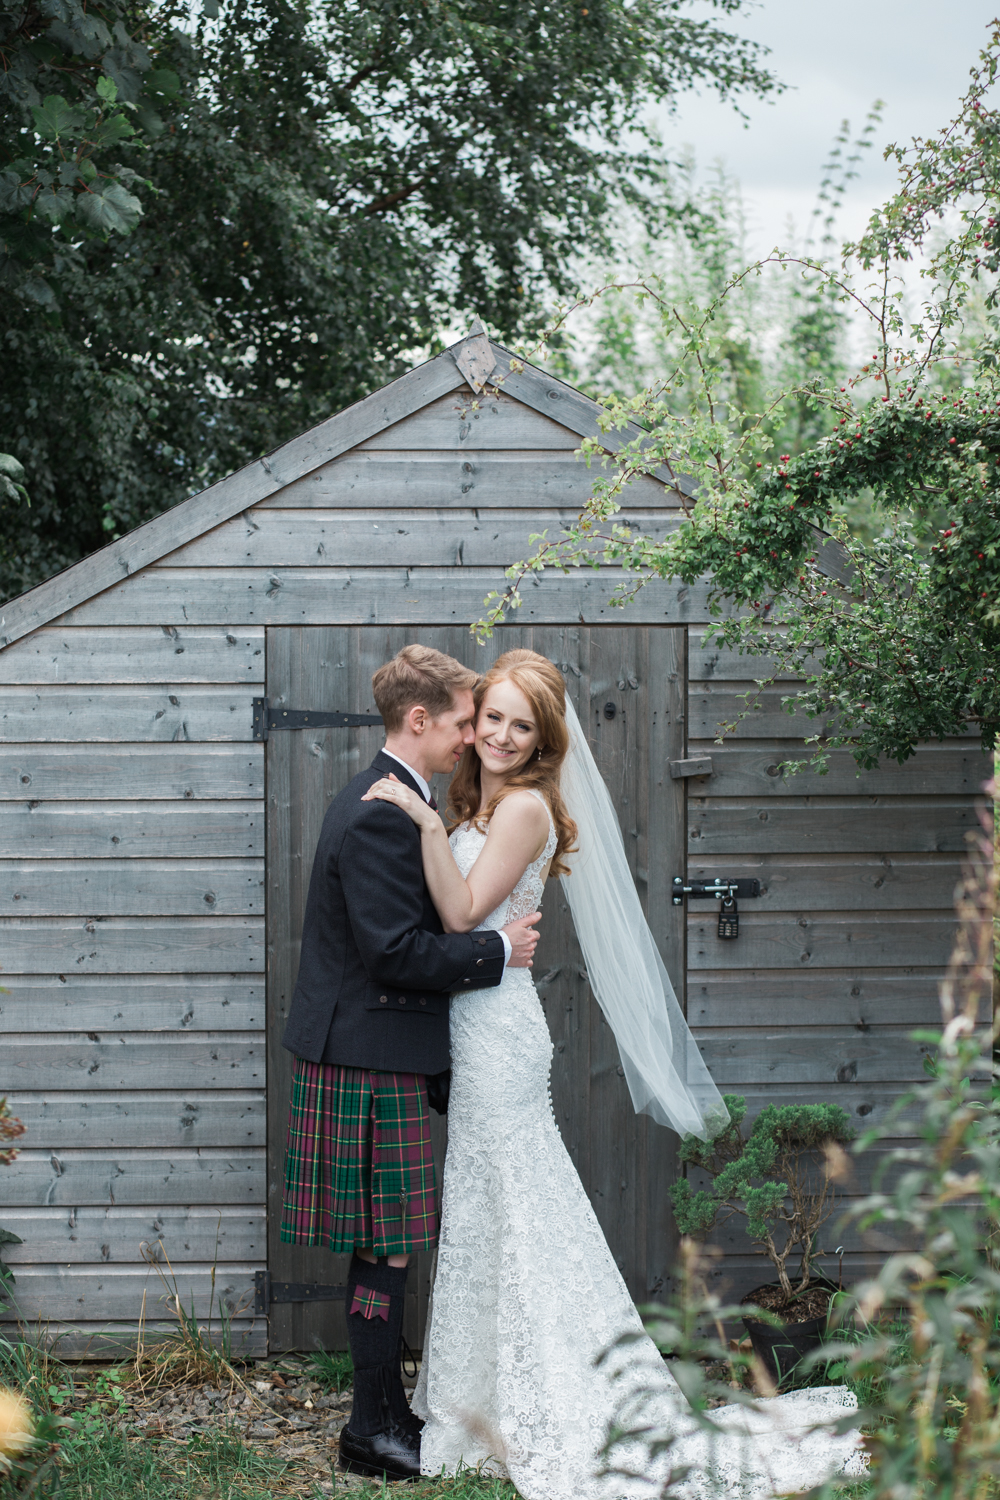 aberdeenweddingwoodendbarn (16 of 20).jpg